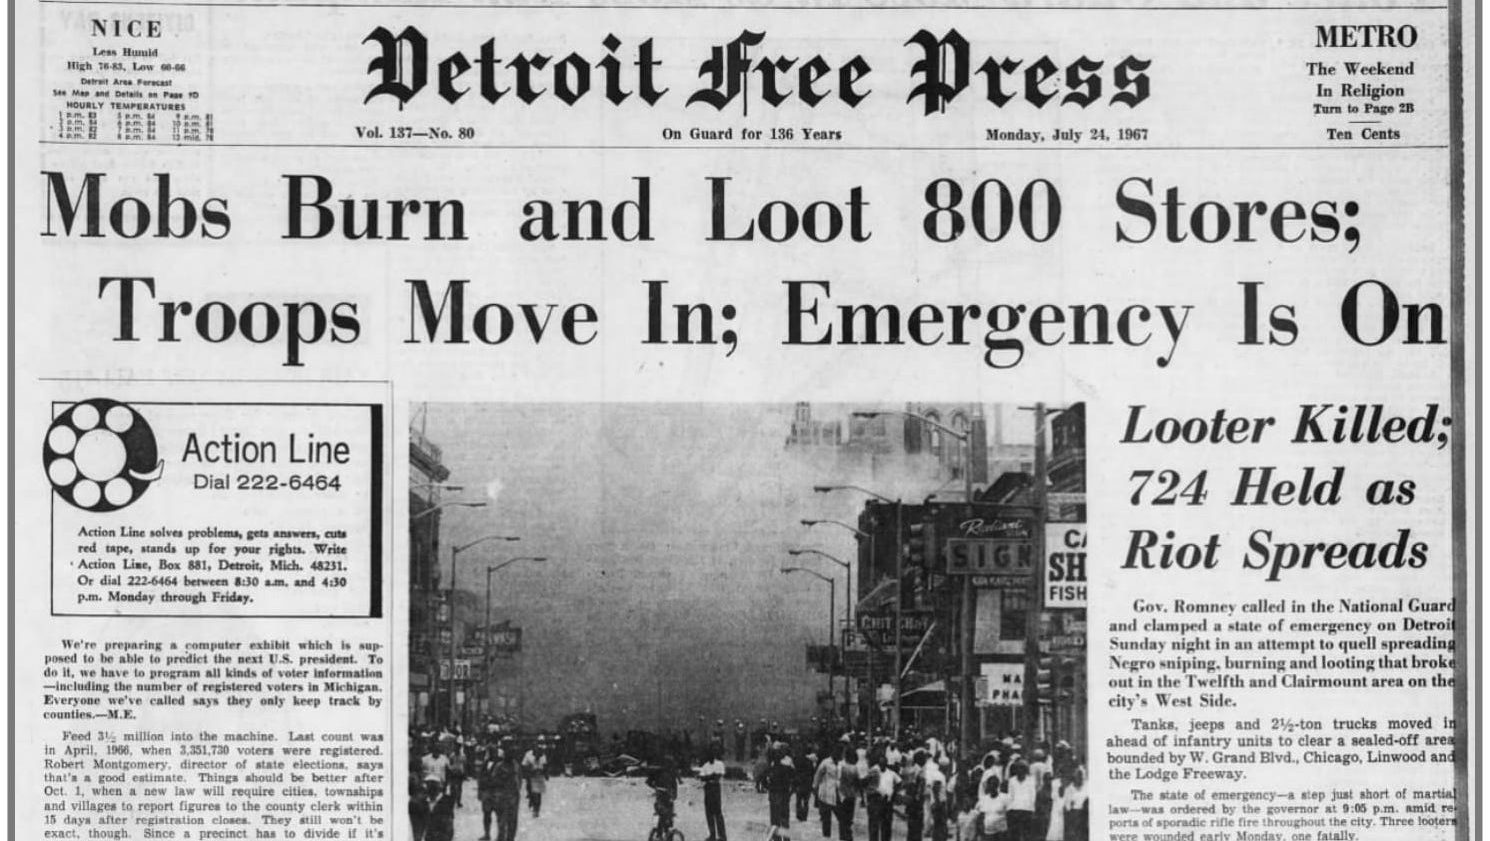 Detroit Free Press from 1967